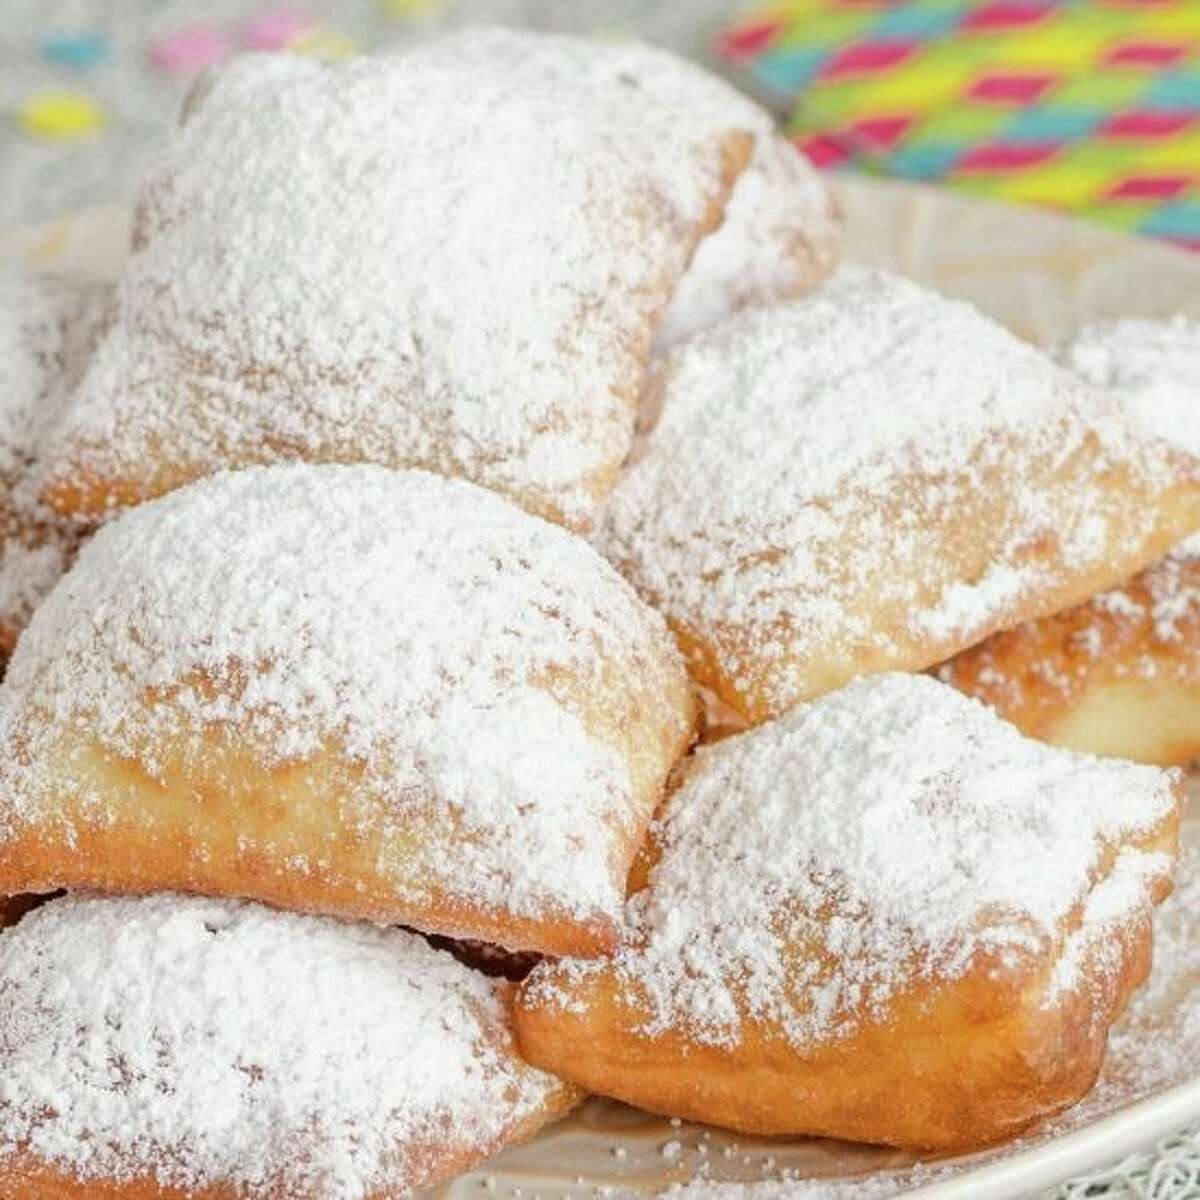 Piche's Concessions Menu itenms: Beignets, funnel cake, fried dough, fried Oreos, fried Reeses or fried Snickers $8 each. Toppings: strawberry, chocolate and caramel $2 Available Sept. 22-27 Find out more